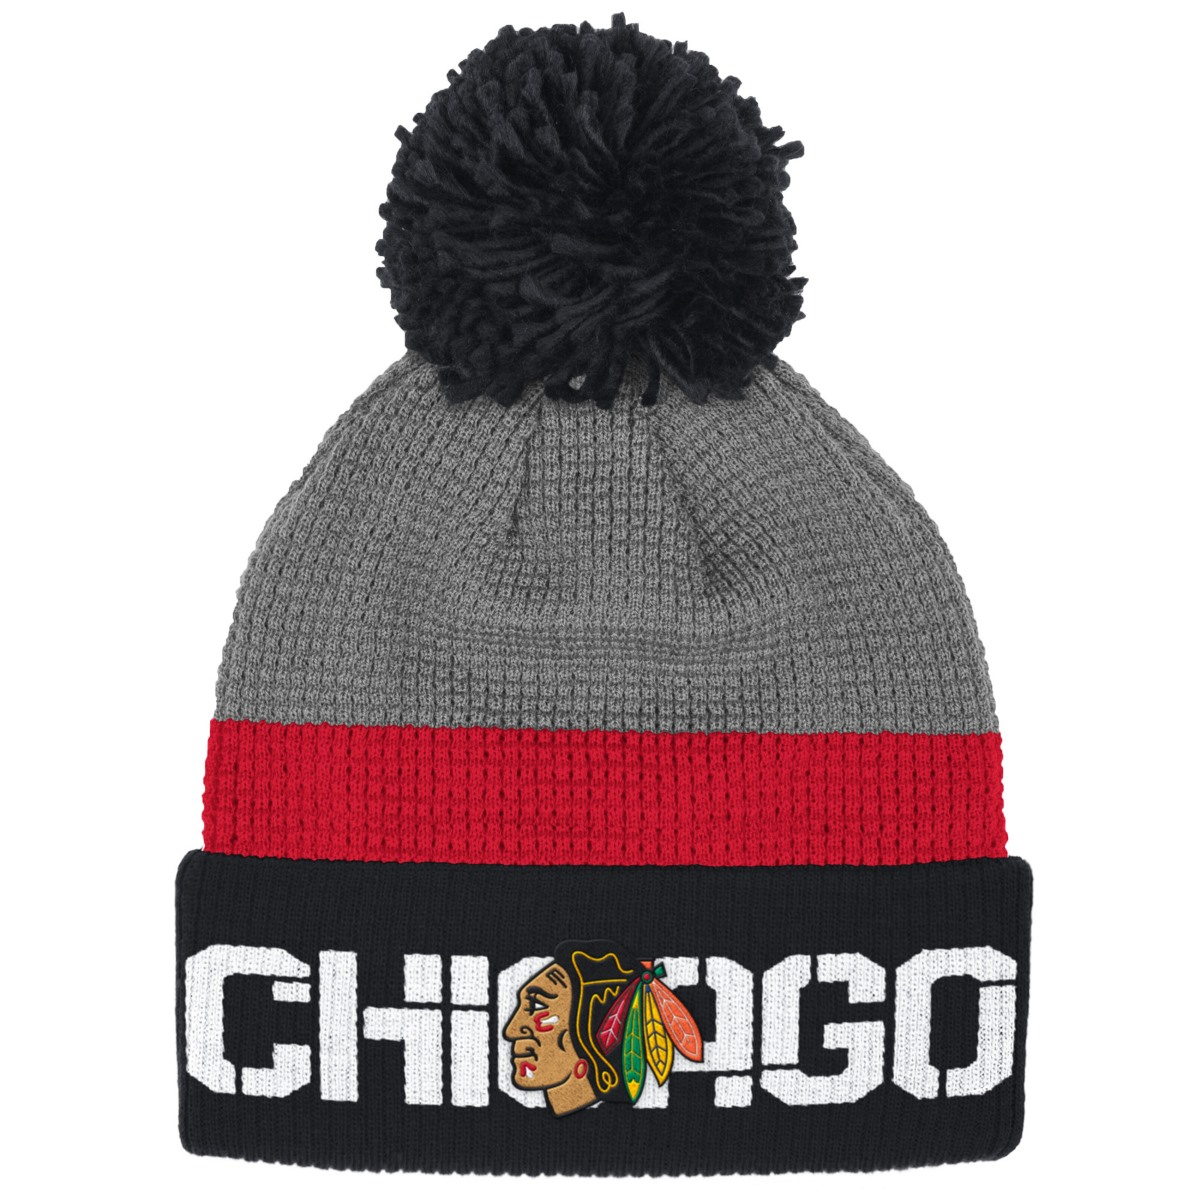 e23dcb5d12c ... new zealand chicago blackhawks reebok nhl 2016 center ice cuffed knit  hat w pom 3395a 67246